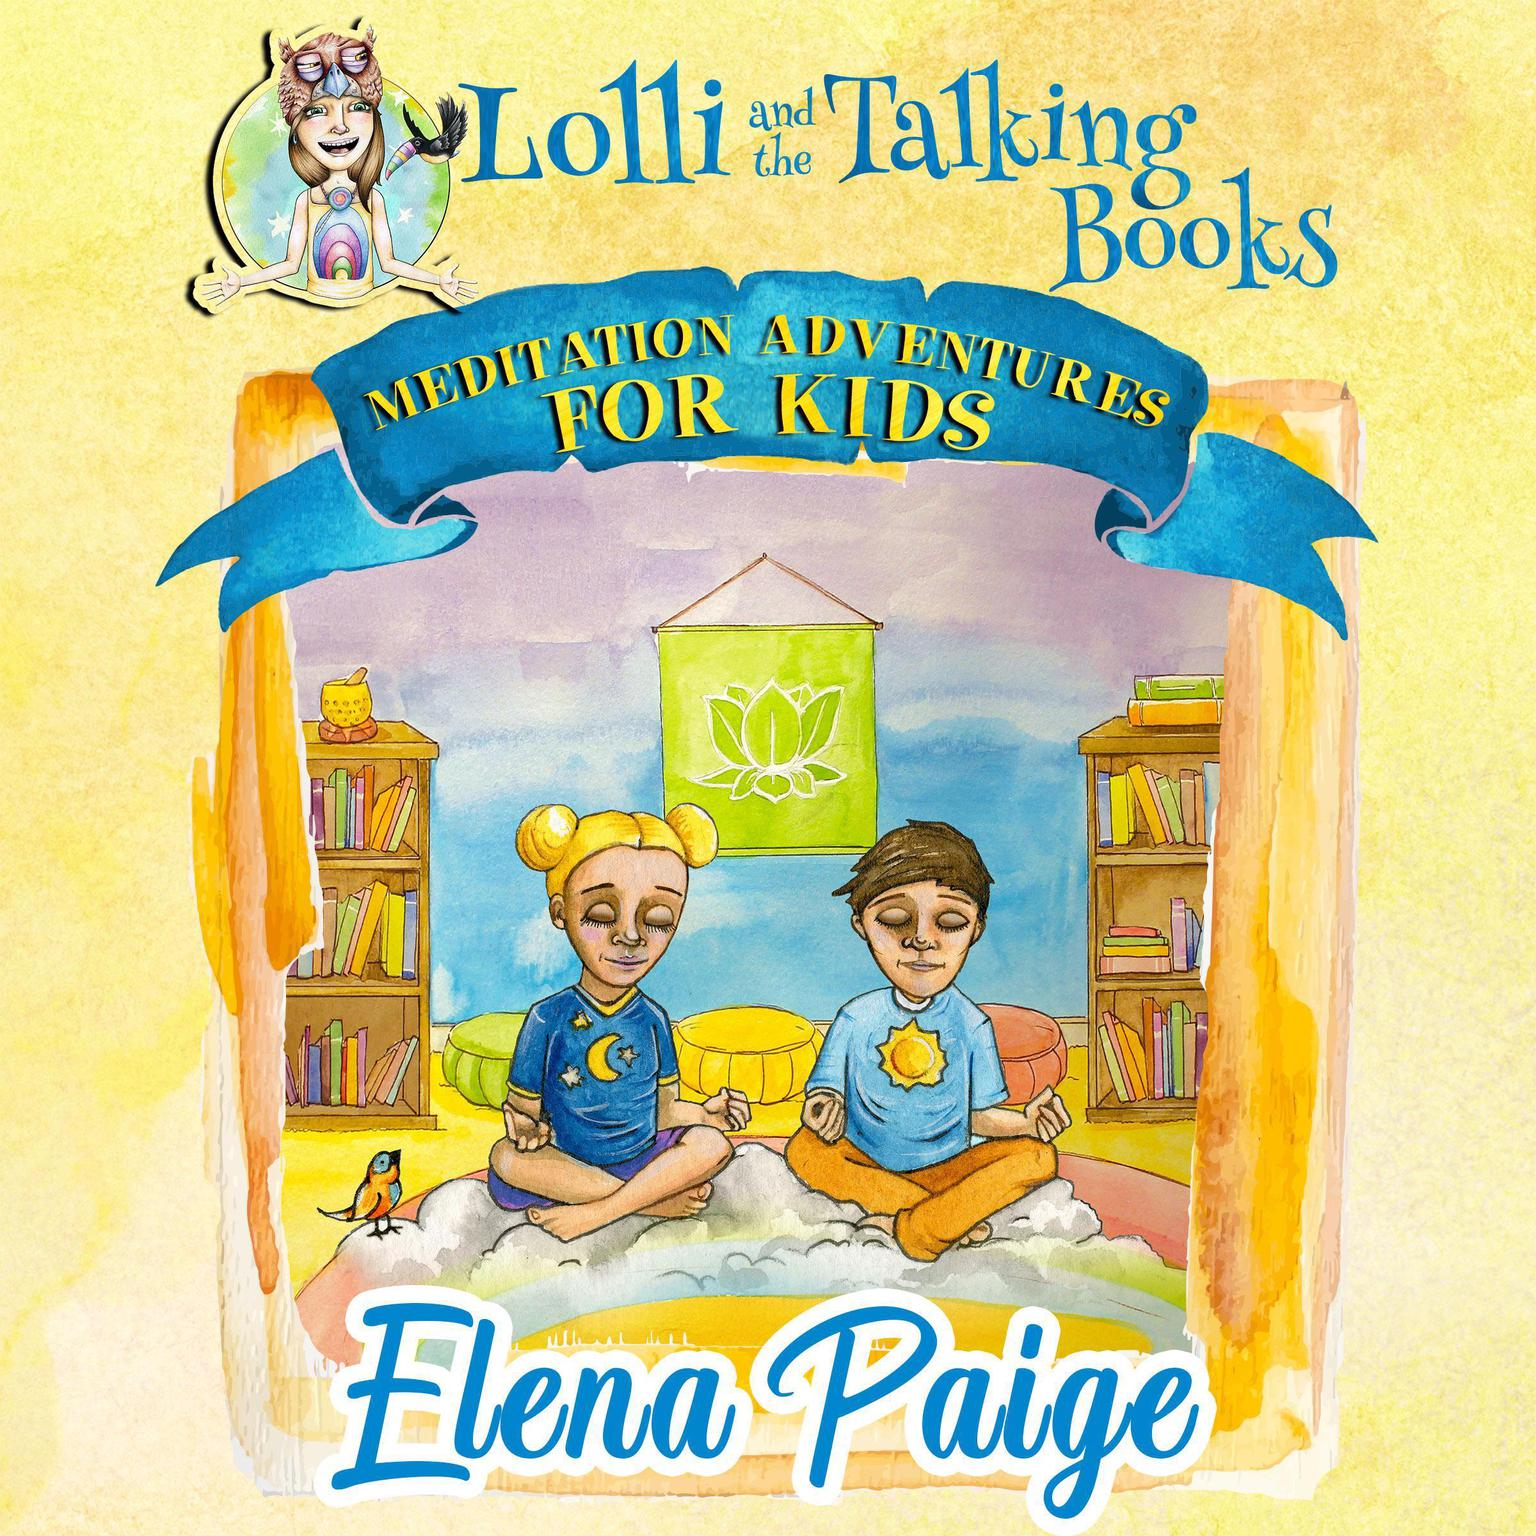 Printable Lolli and the Talking Books (Meditation Adventures for Kids - volume 3) Audiobook Cover Art